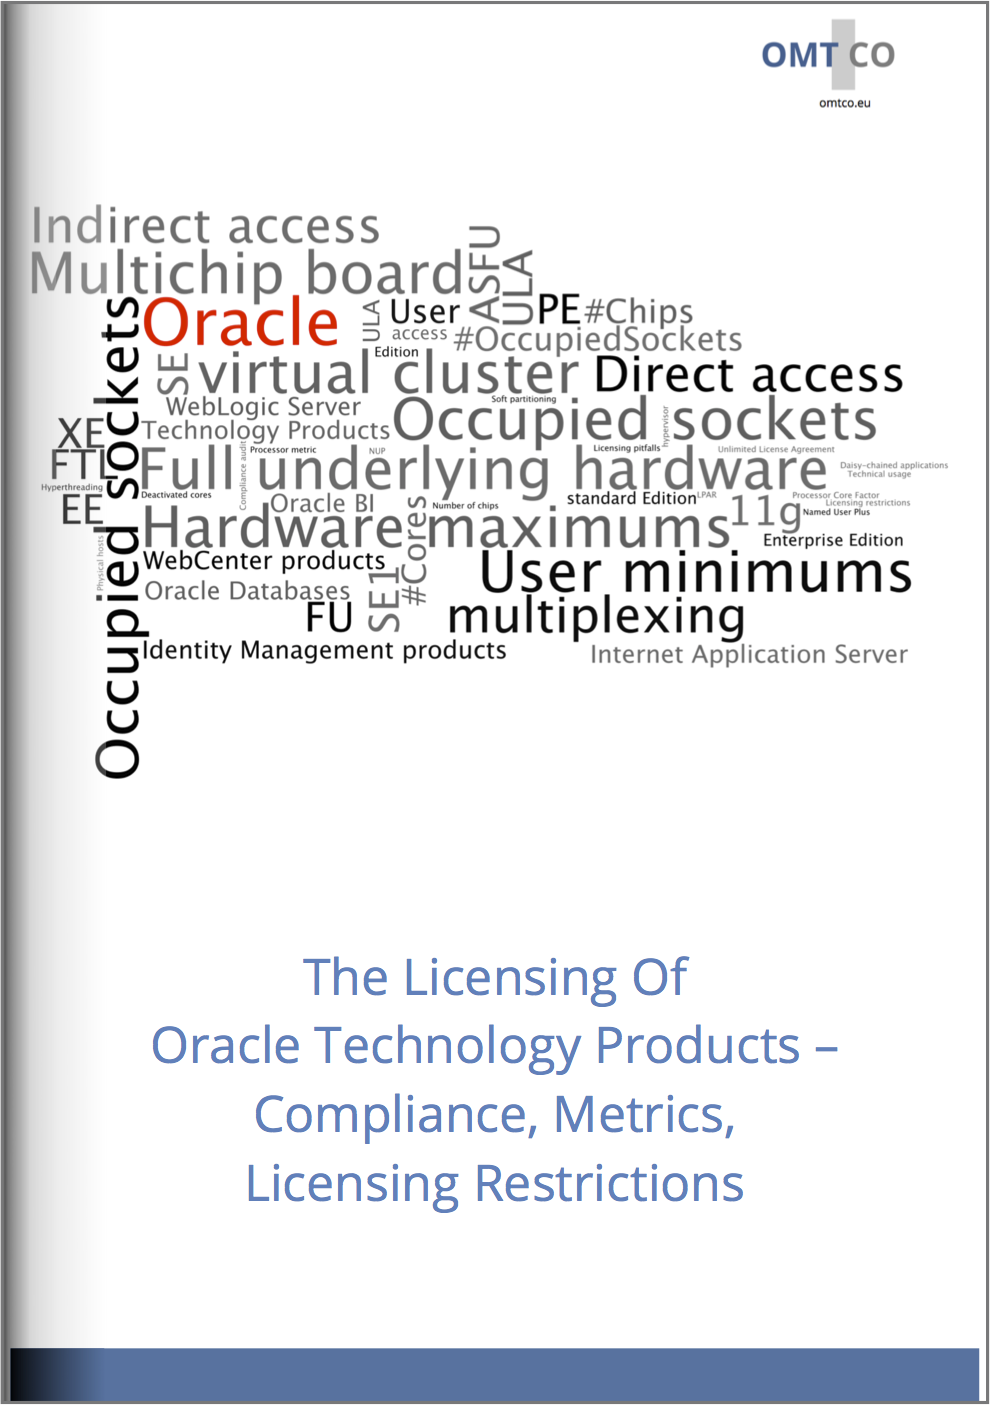 The Licensing Of Oracle Technology Products – Compliance, Metrics